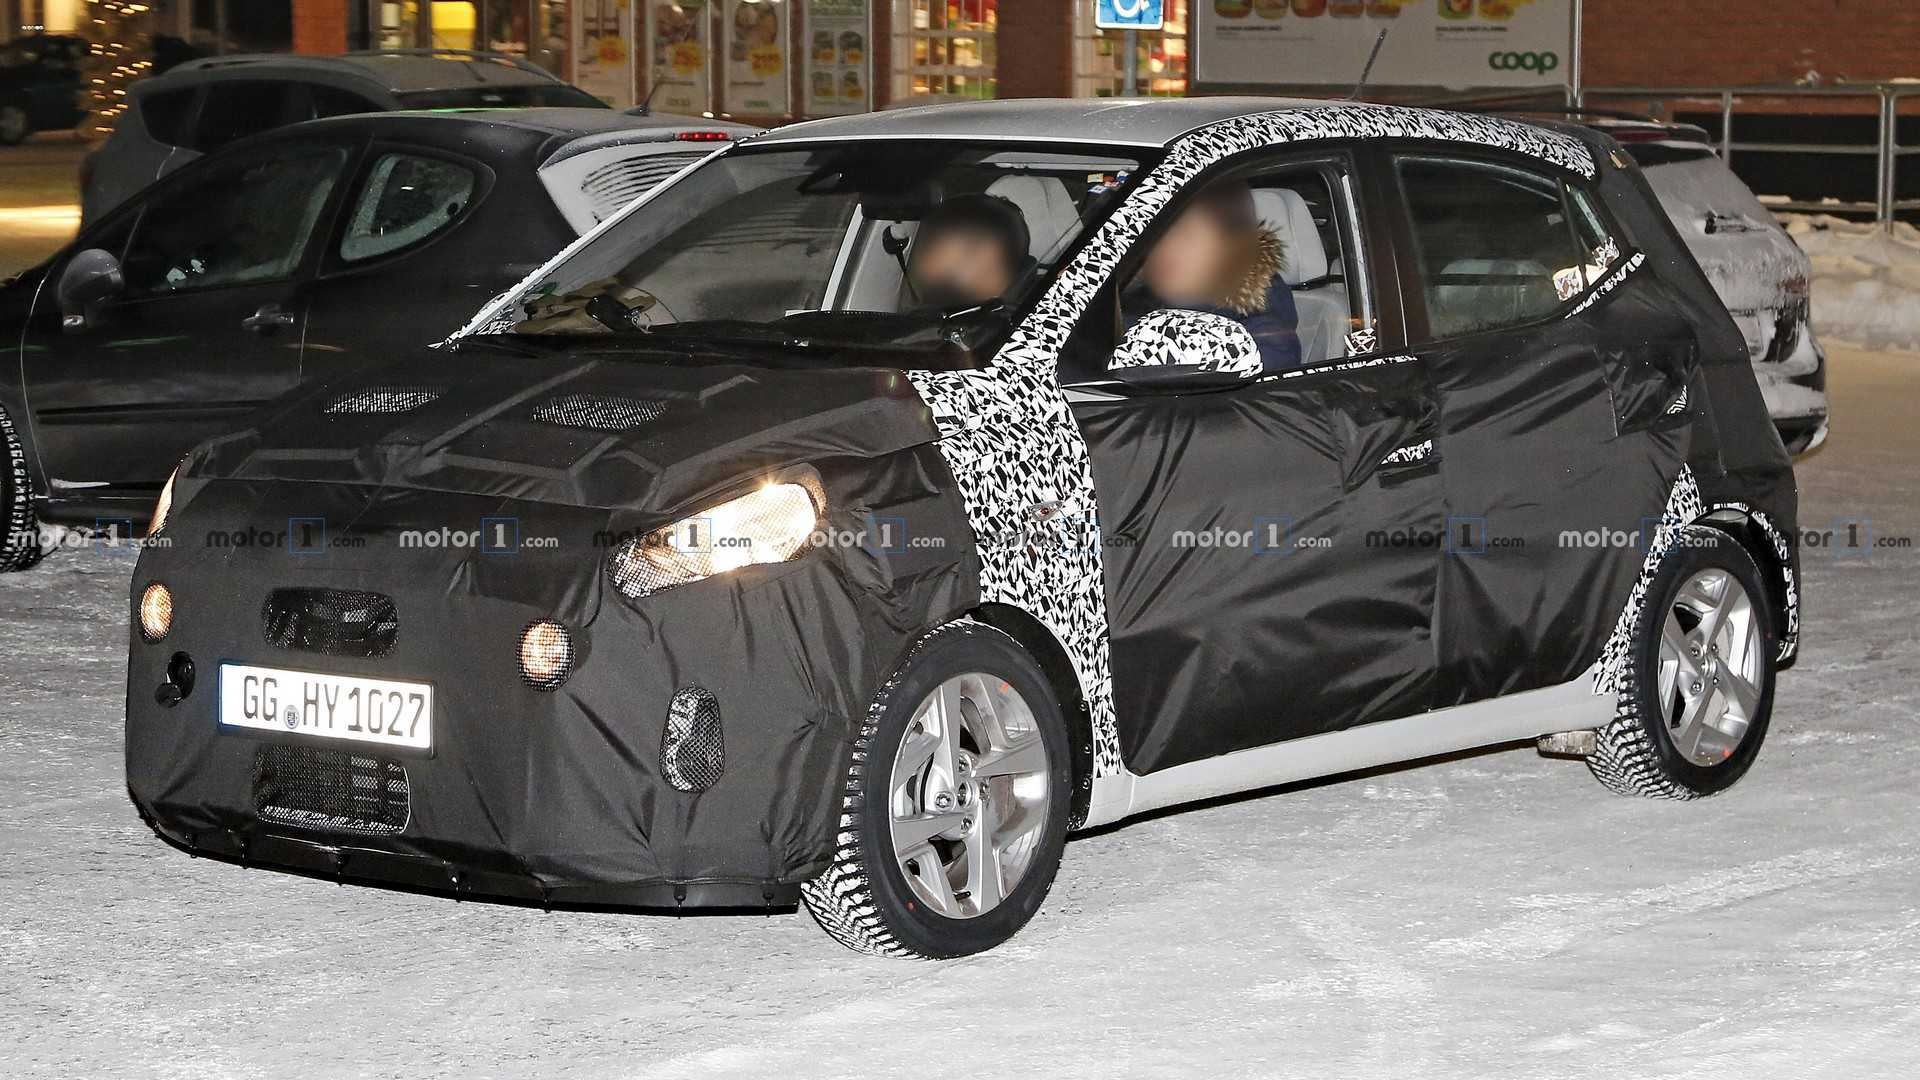 39 All New Hyundai I10 2020 Price And Release Date